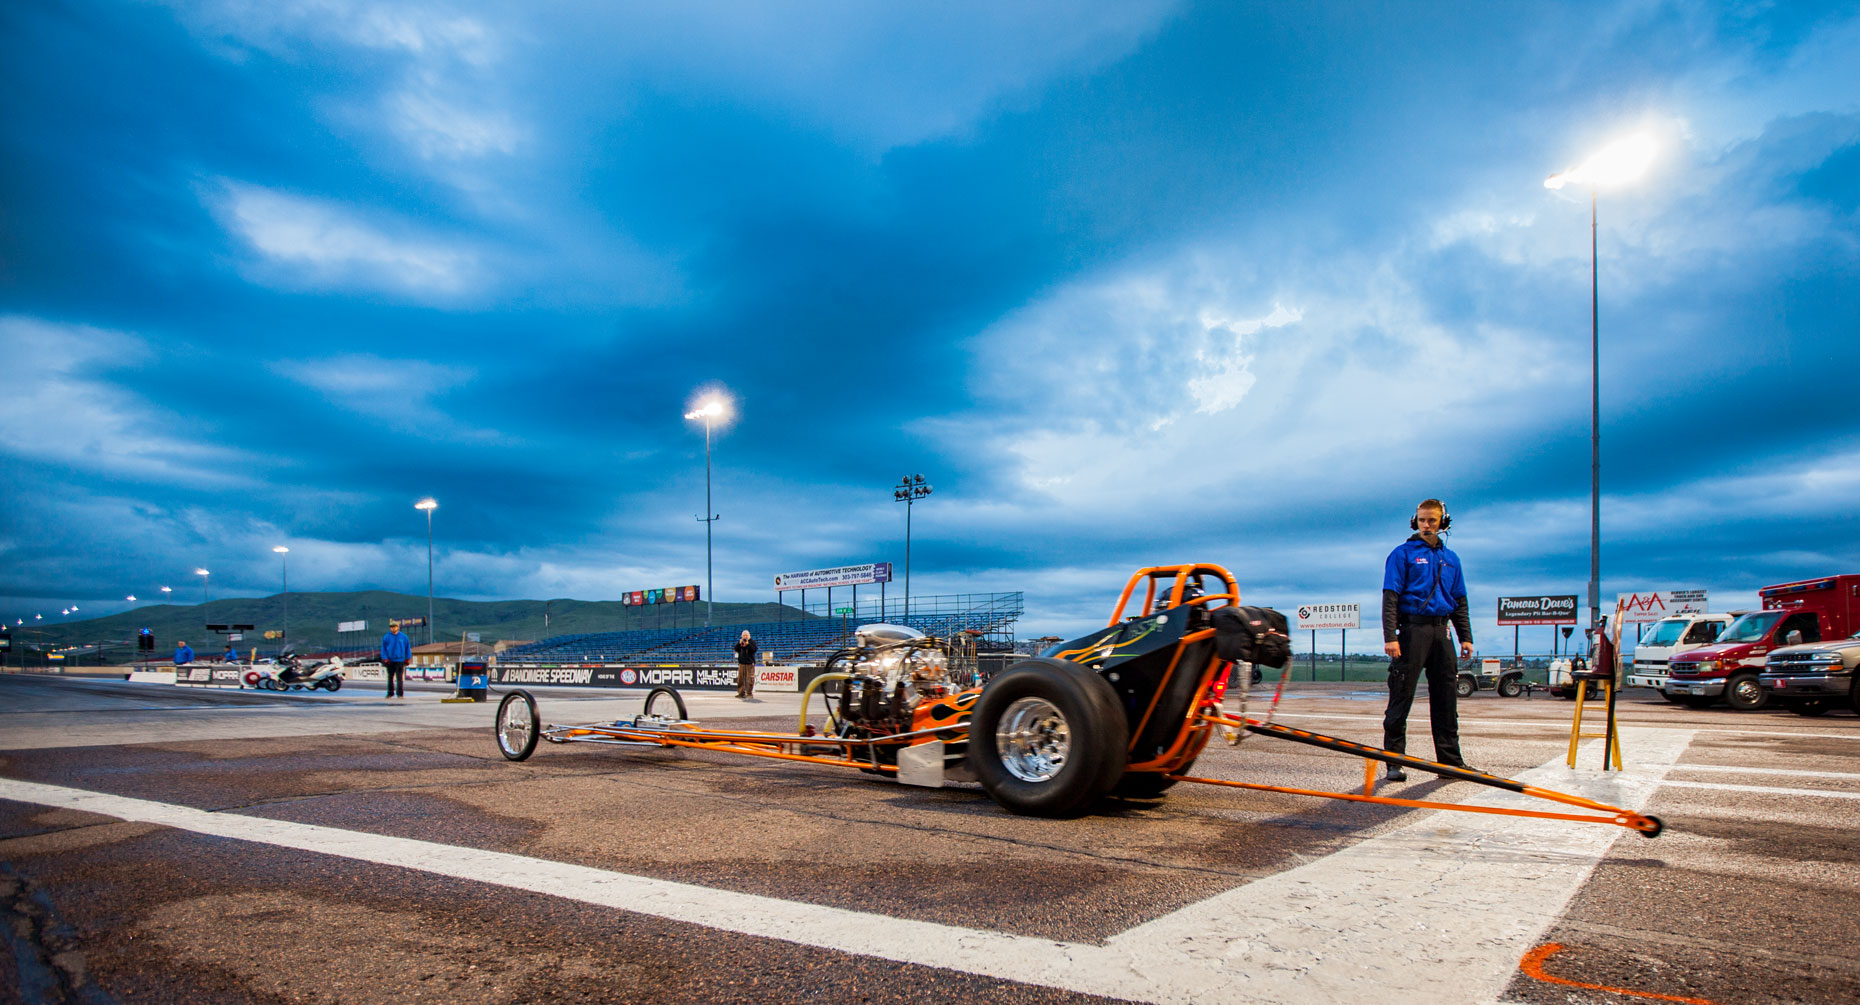 12 Location Photography Bandimere Speedway Denver Colorado Motorcyle NHRA Dragtrack Dragstrip Lineup